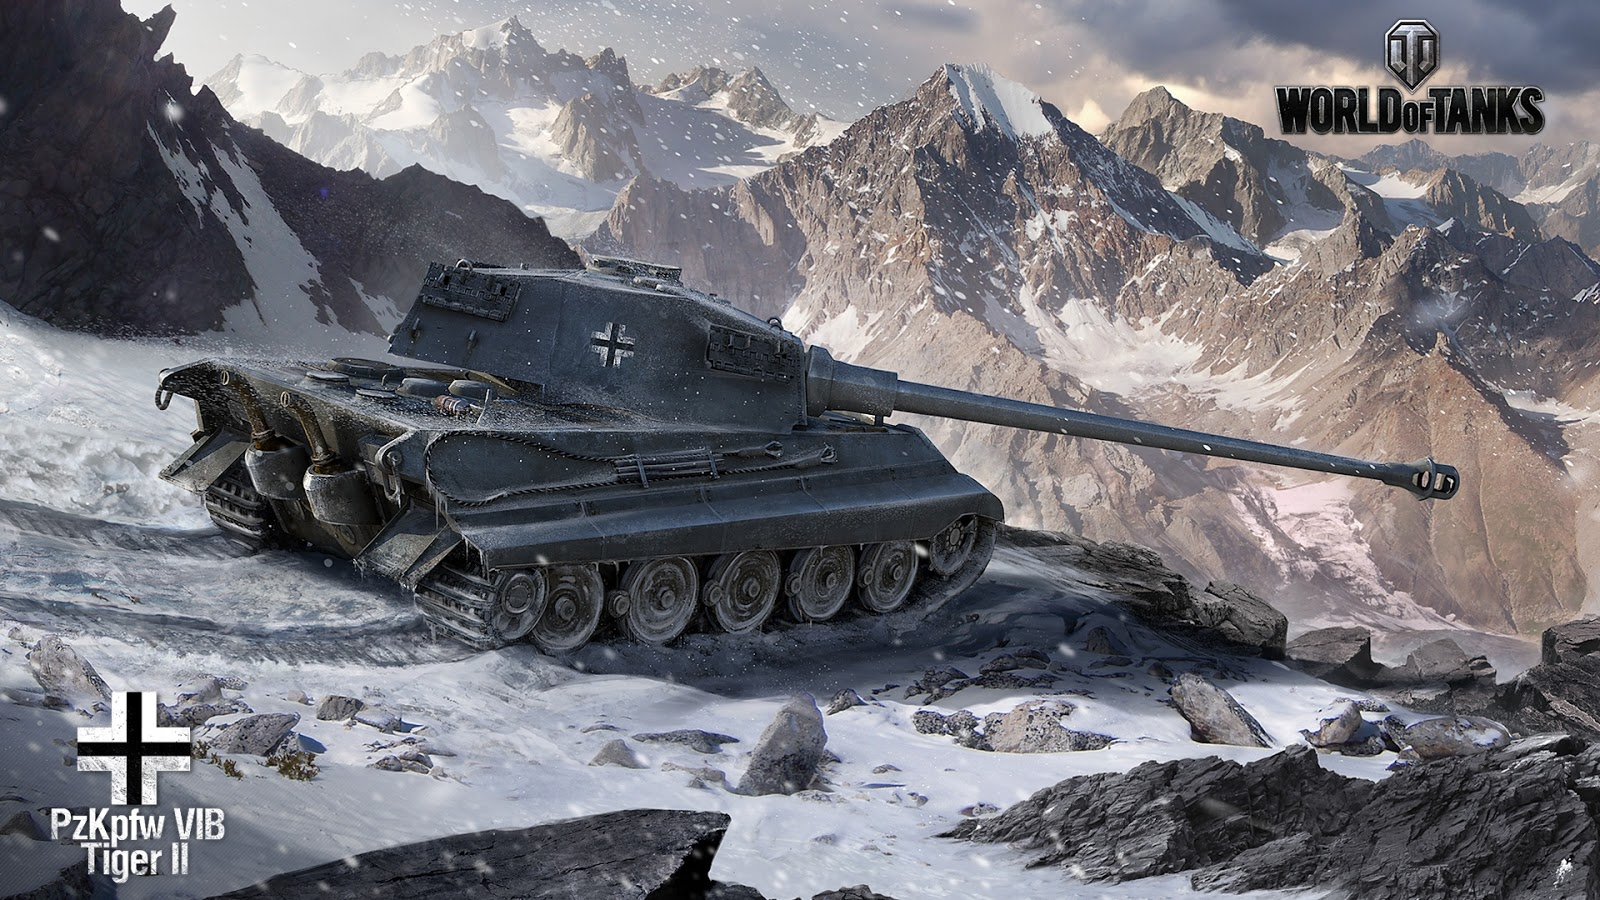 Wallpapers Wallpaper World Of Tanks King Tiger